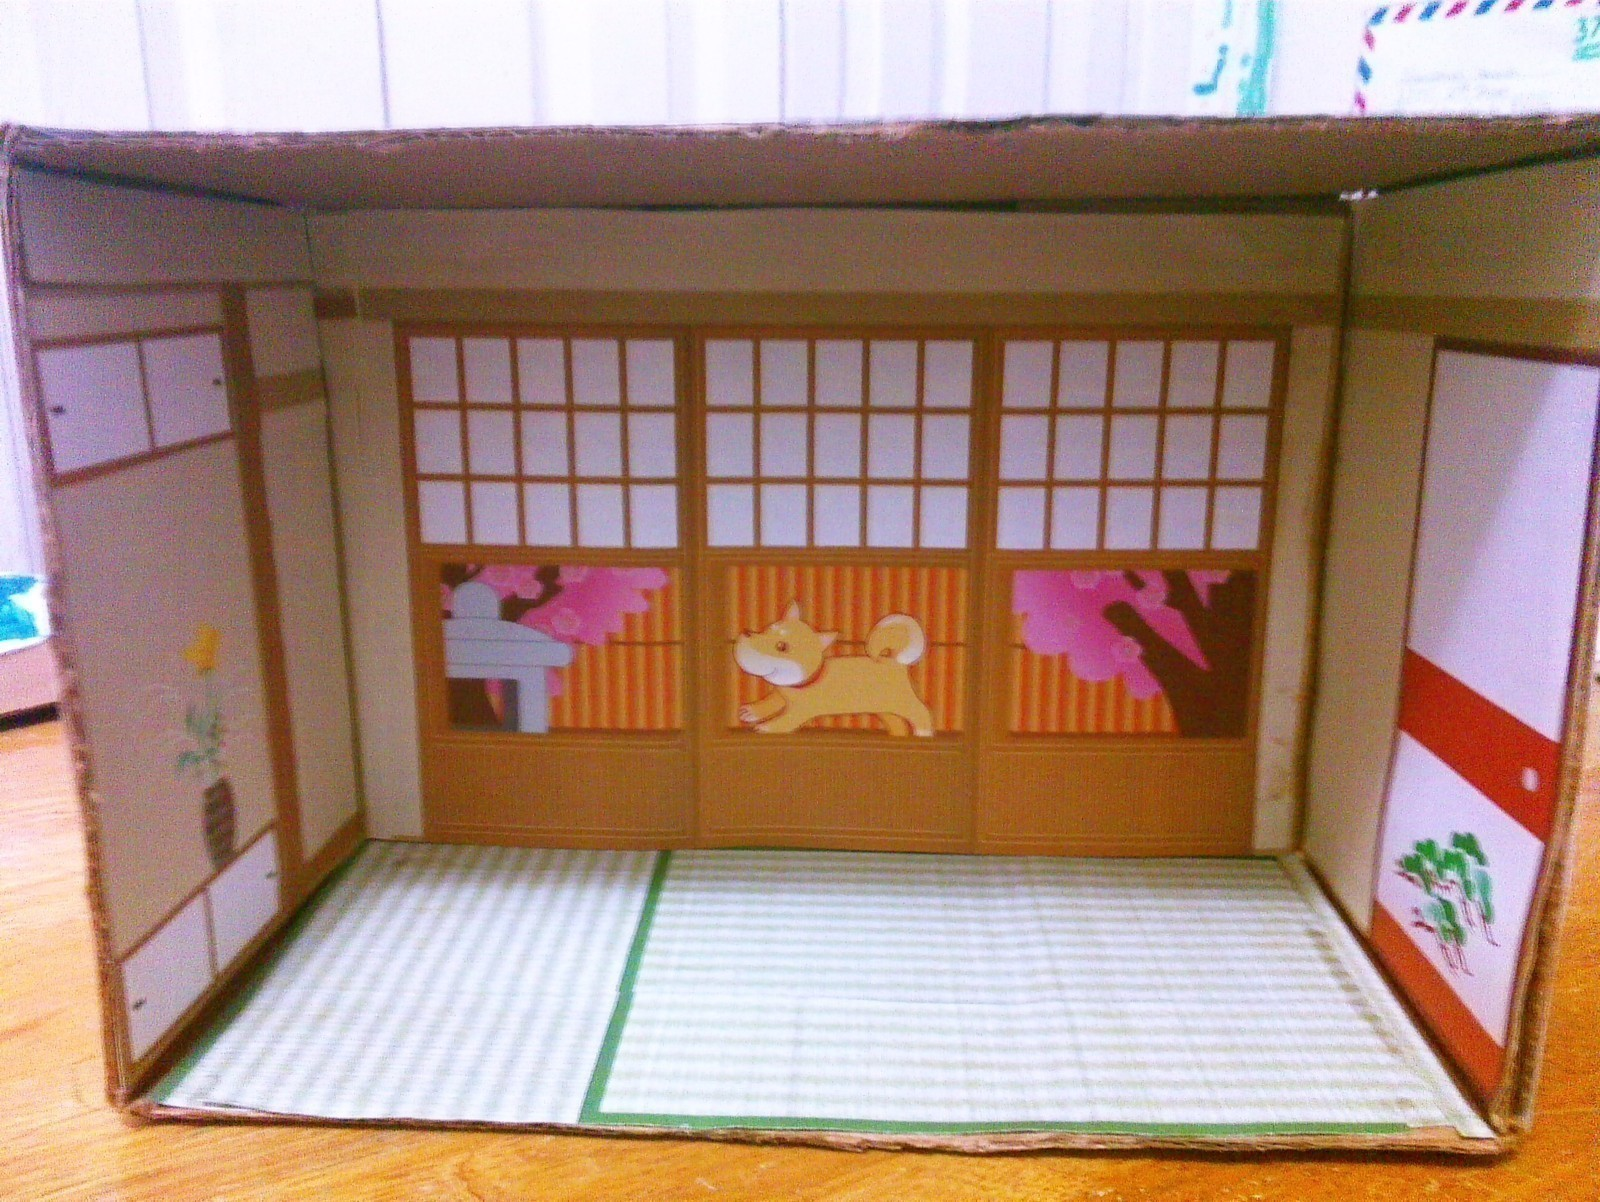 Japanese Paper House Diorama  A Dolls House  Decorating and Papercraft on Cut Out  Keep